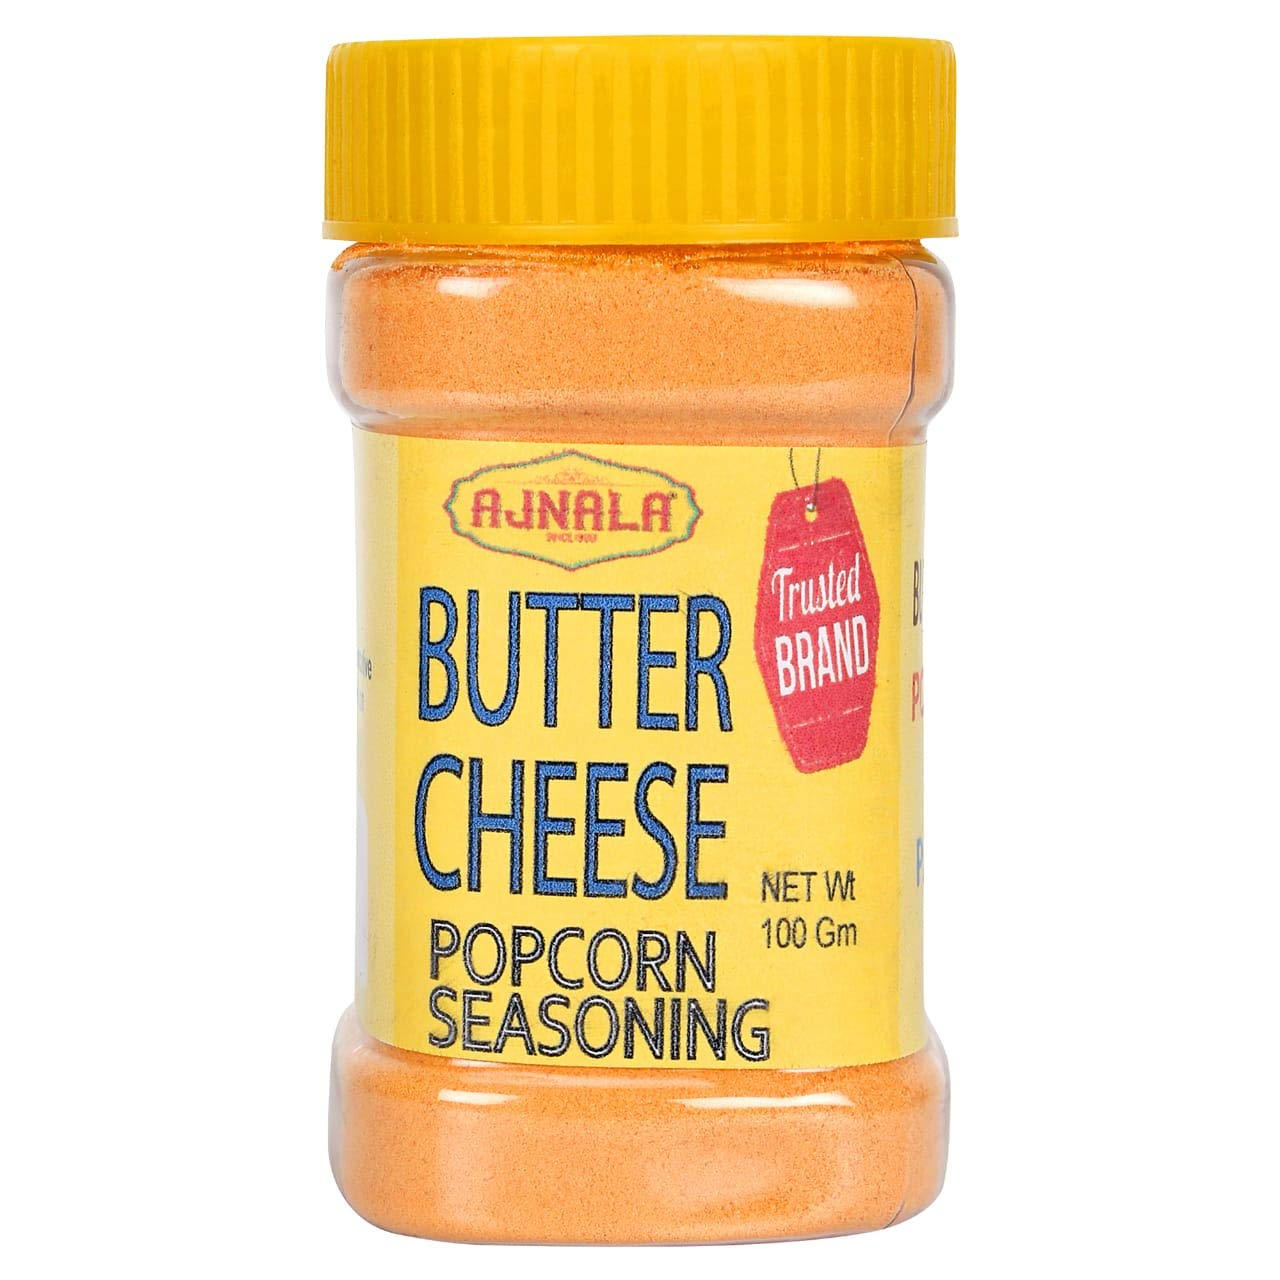 Ajnala Butter Salt Cheese Popcorn Seasoning Powder In Shaker Jar Perfect For Pop Corn Making Cheese Sauce For Nachos Buy Online In India At Desertcart In Productid 221796217